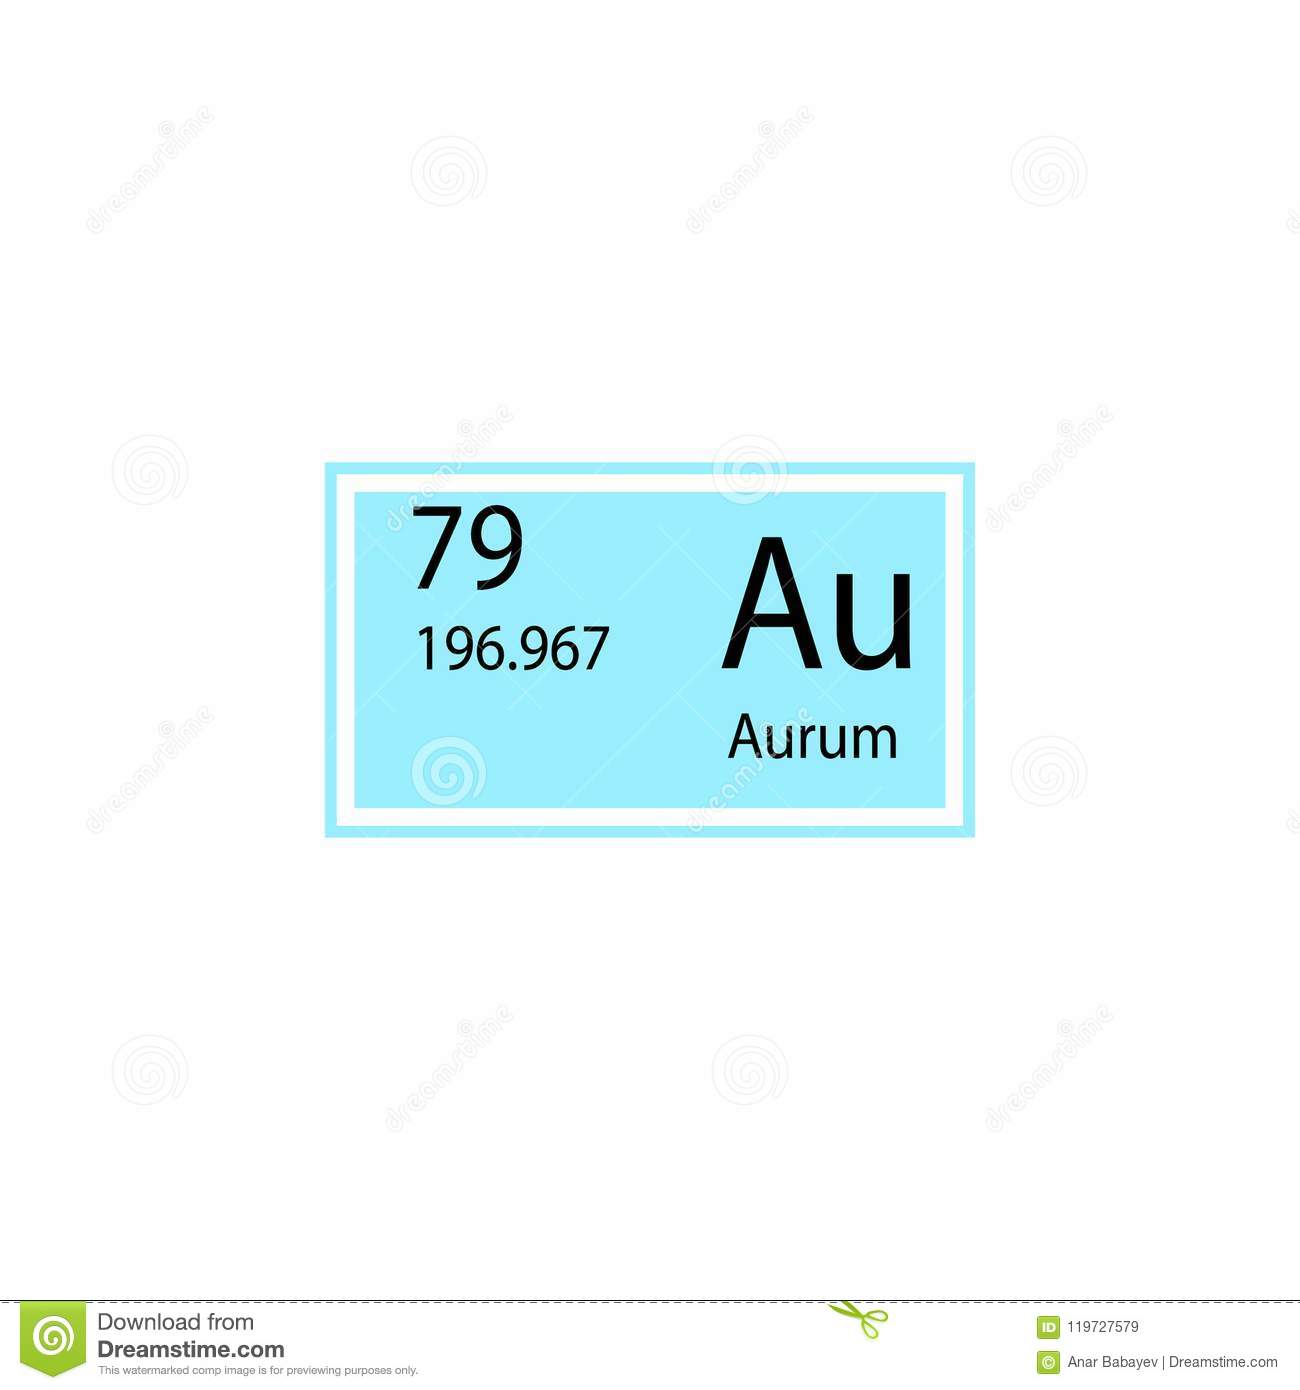 Periodic table element aurum icon element of chemical sign icon periodic table element aurum icon element of chemical sign icon premium quality graphic design icon signs and symbols collection icon for websites urtaz Gallery